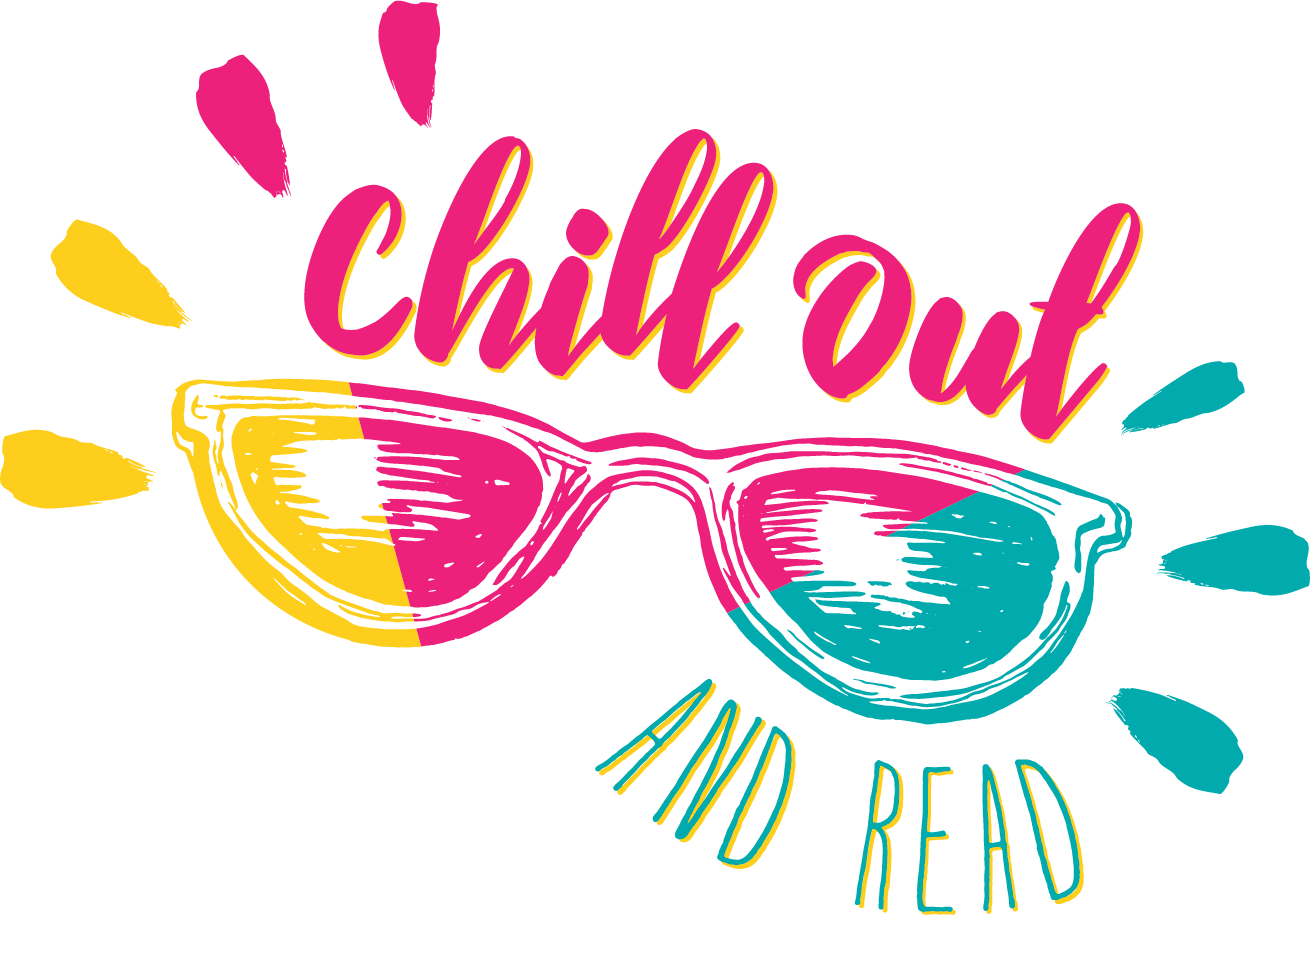 Chill Out and Read